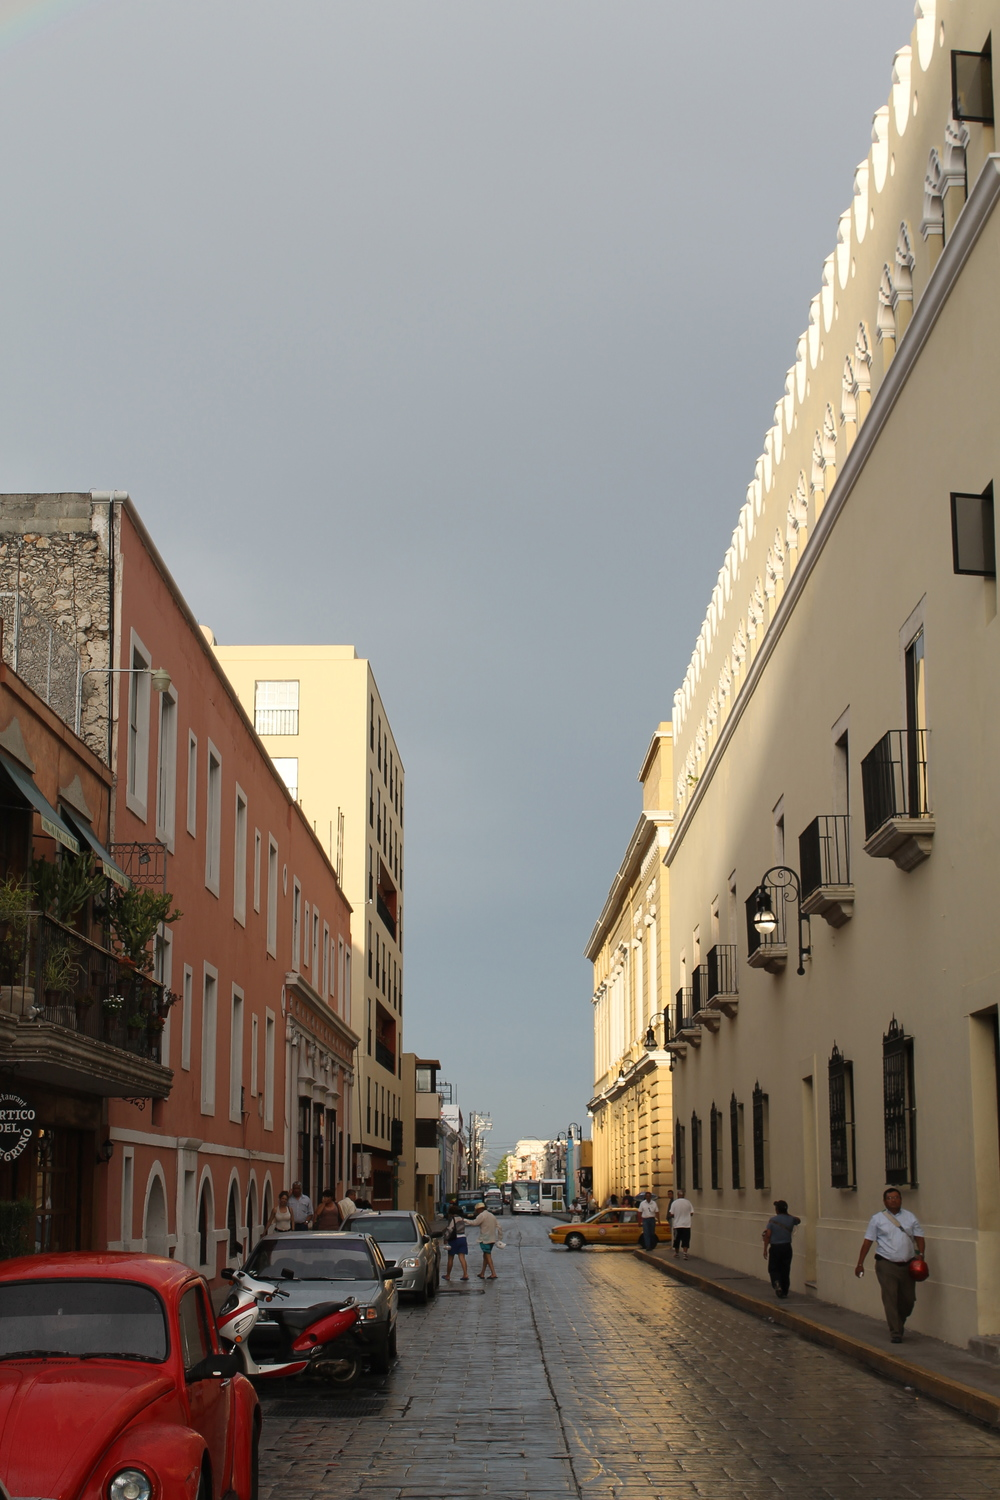 Merida's wet streets after an afternoon shower.